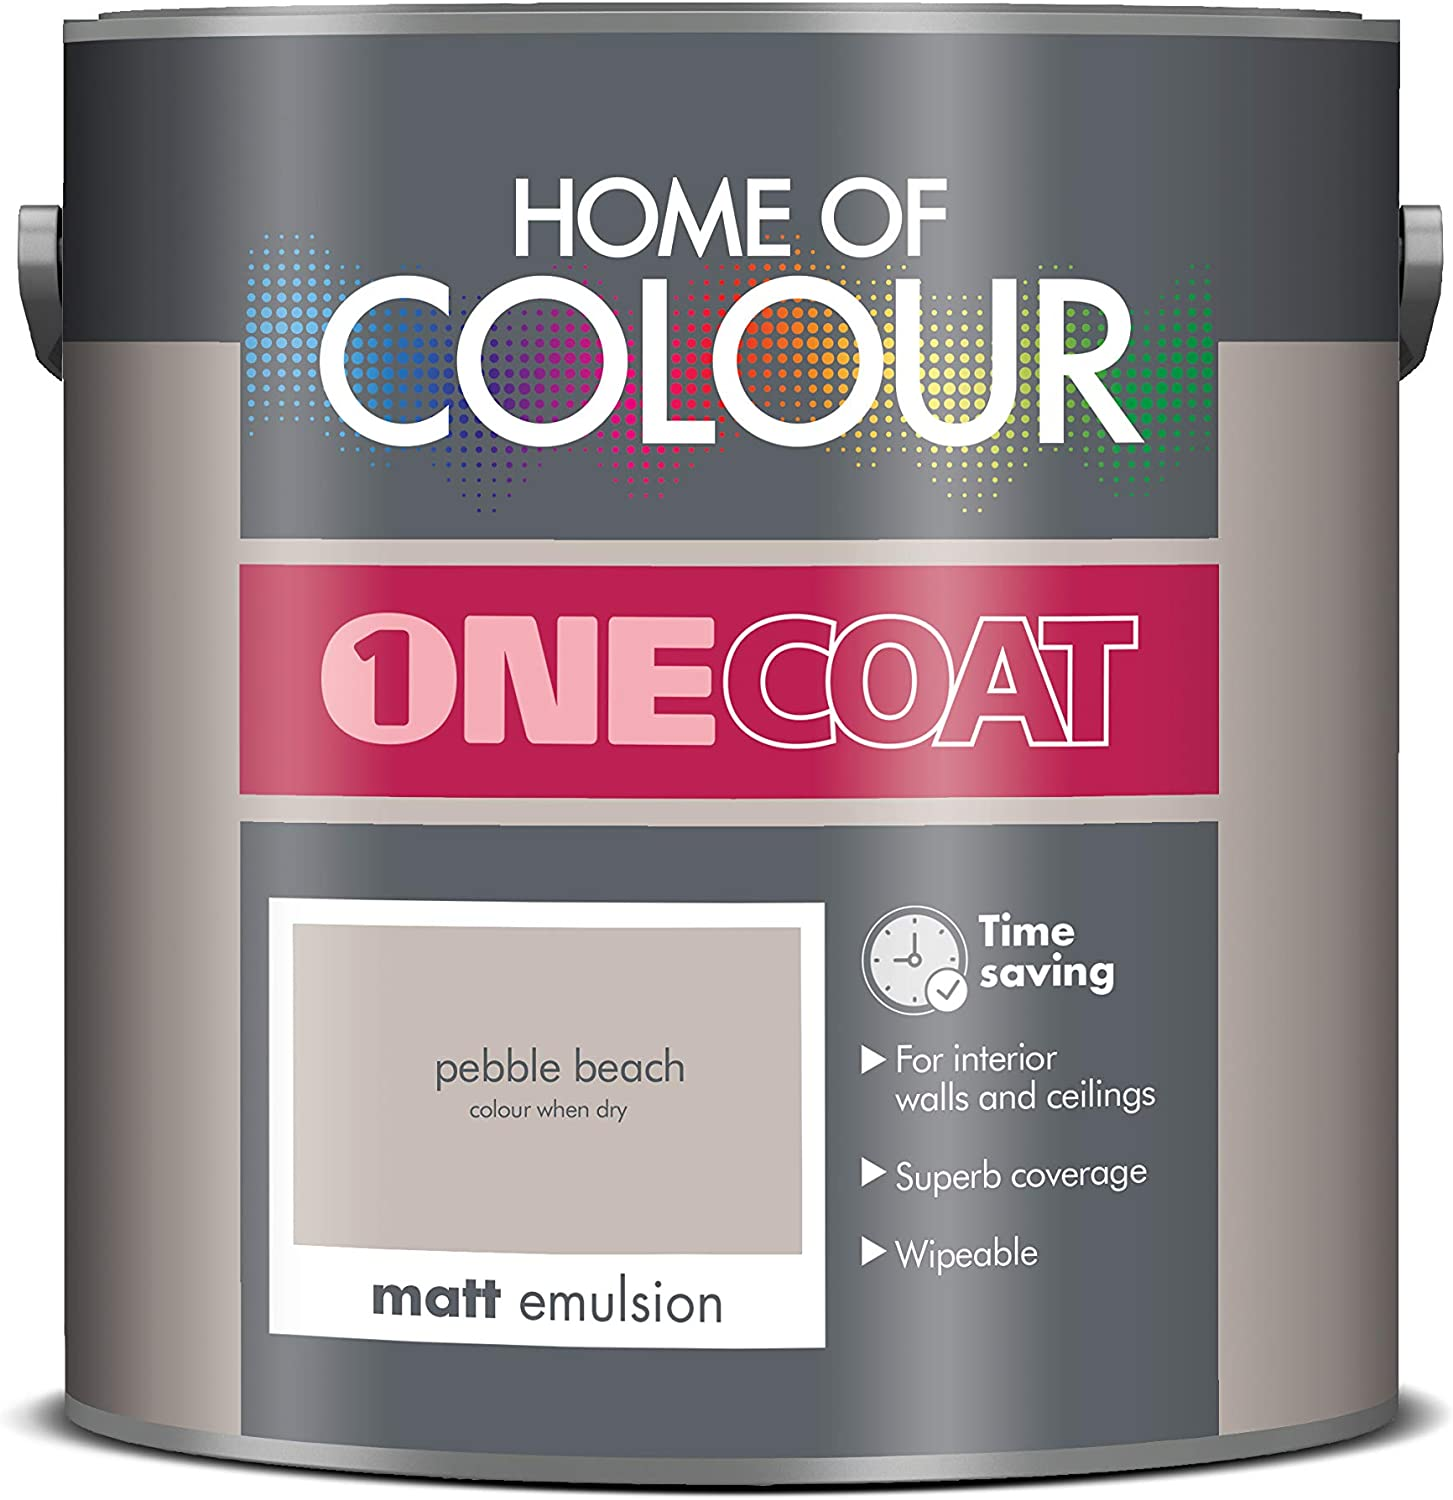 309819 Home of Colour 309823 One Coat Mat